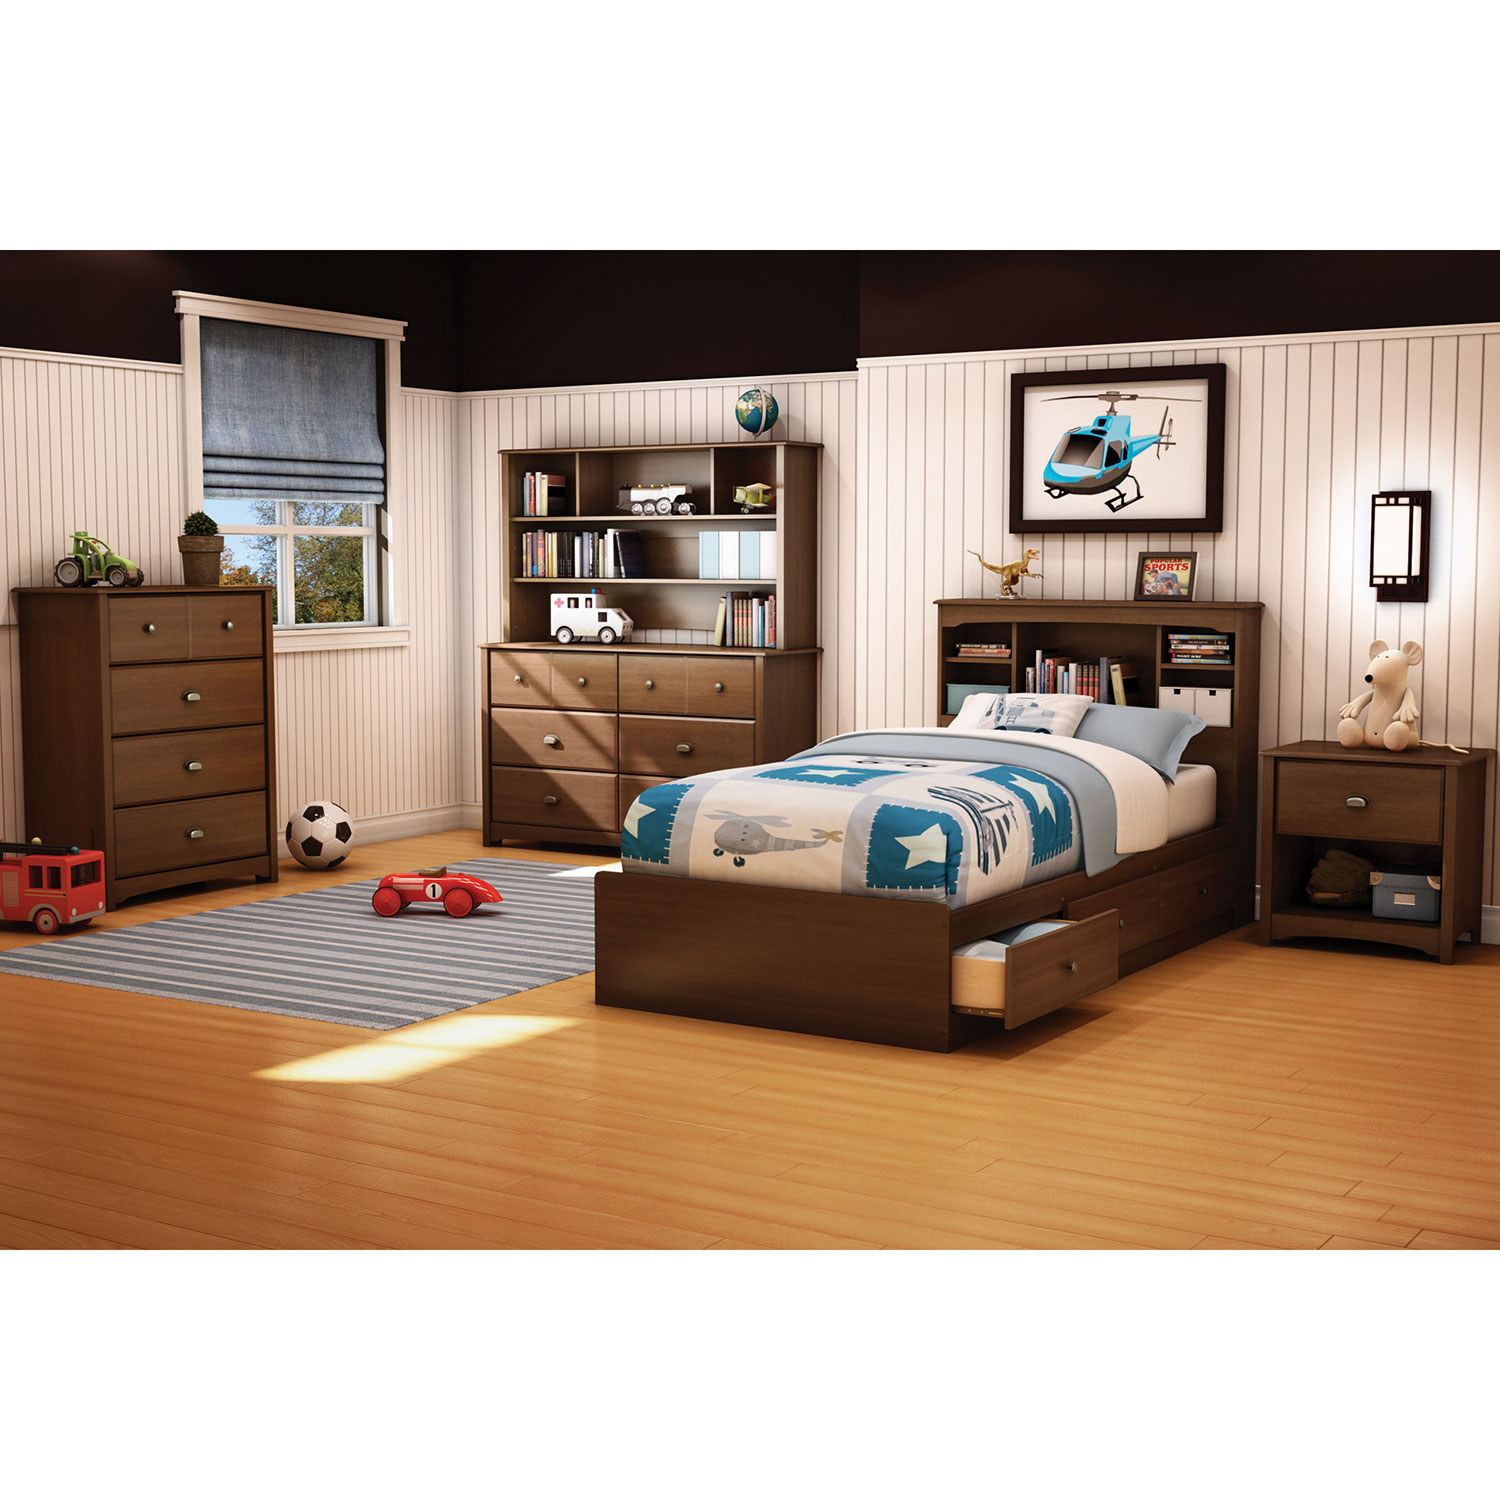 Kids Bedroom Set With Desk Willow Contemporary Kids Bed Single Cherry Brown Kids Beds